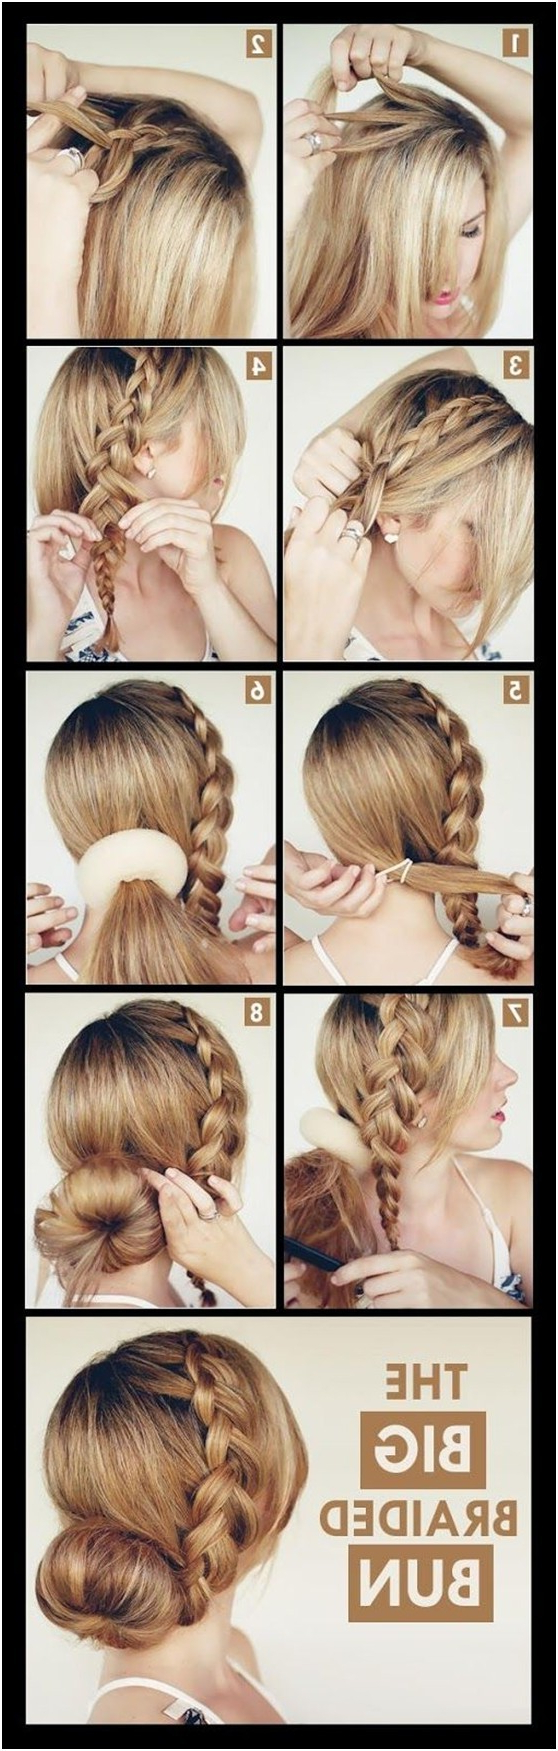 Famous Messy Rope Braid Updo Hairstyles Throughout 15 Braided Updo Hairstyles Tutorials – Pretty Designs (View 12 of 20)